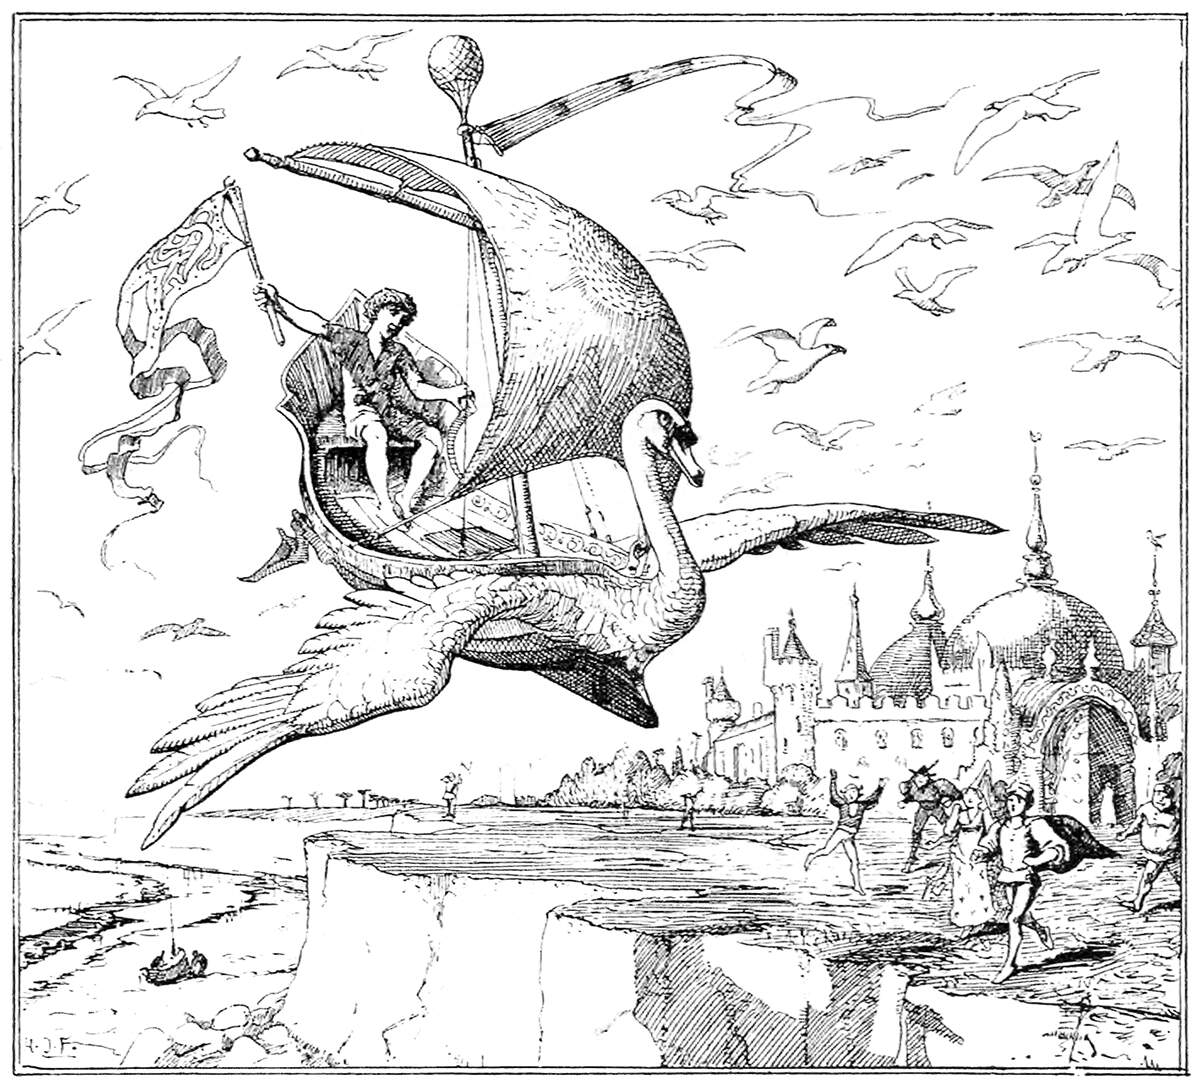 Public Domain Illustrations From Old Books Boing Boing